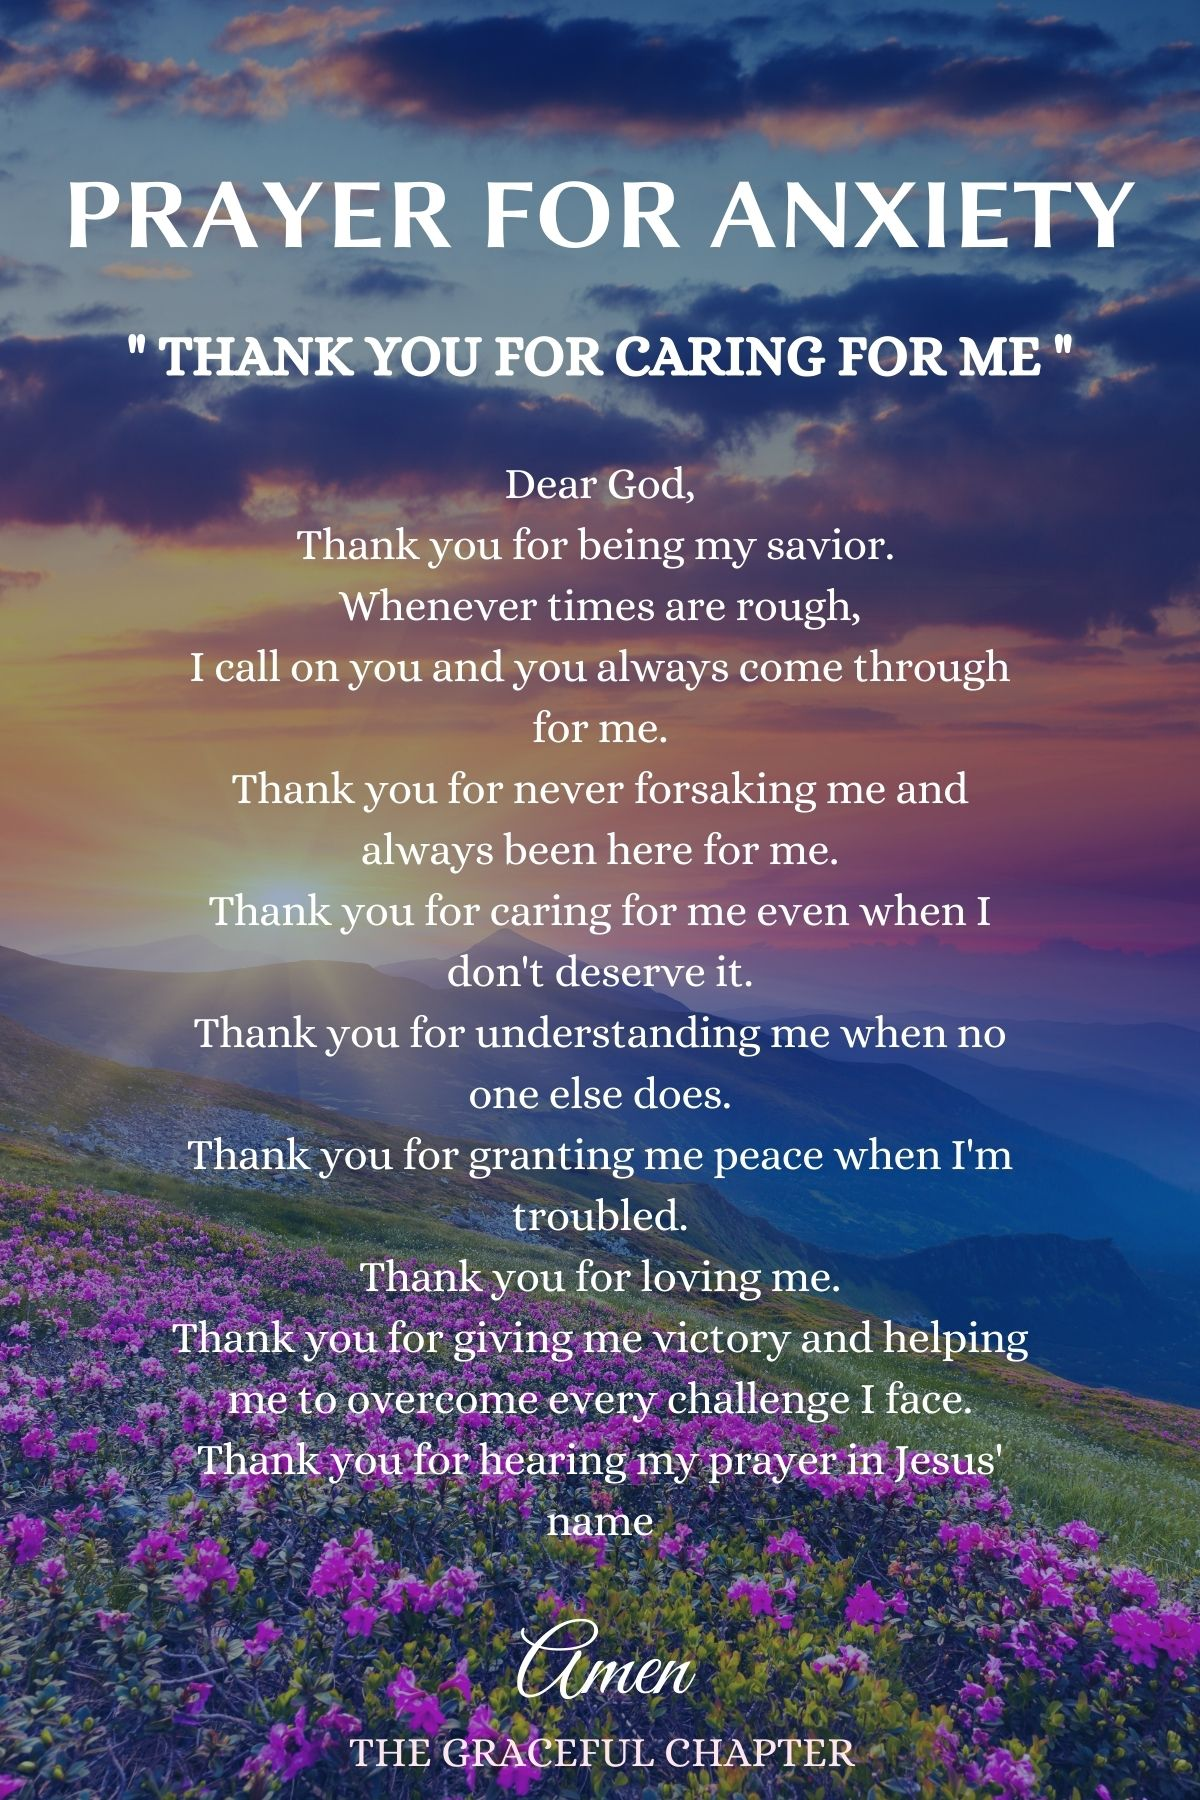 Thank you for caring for me